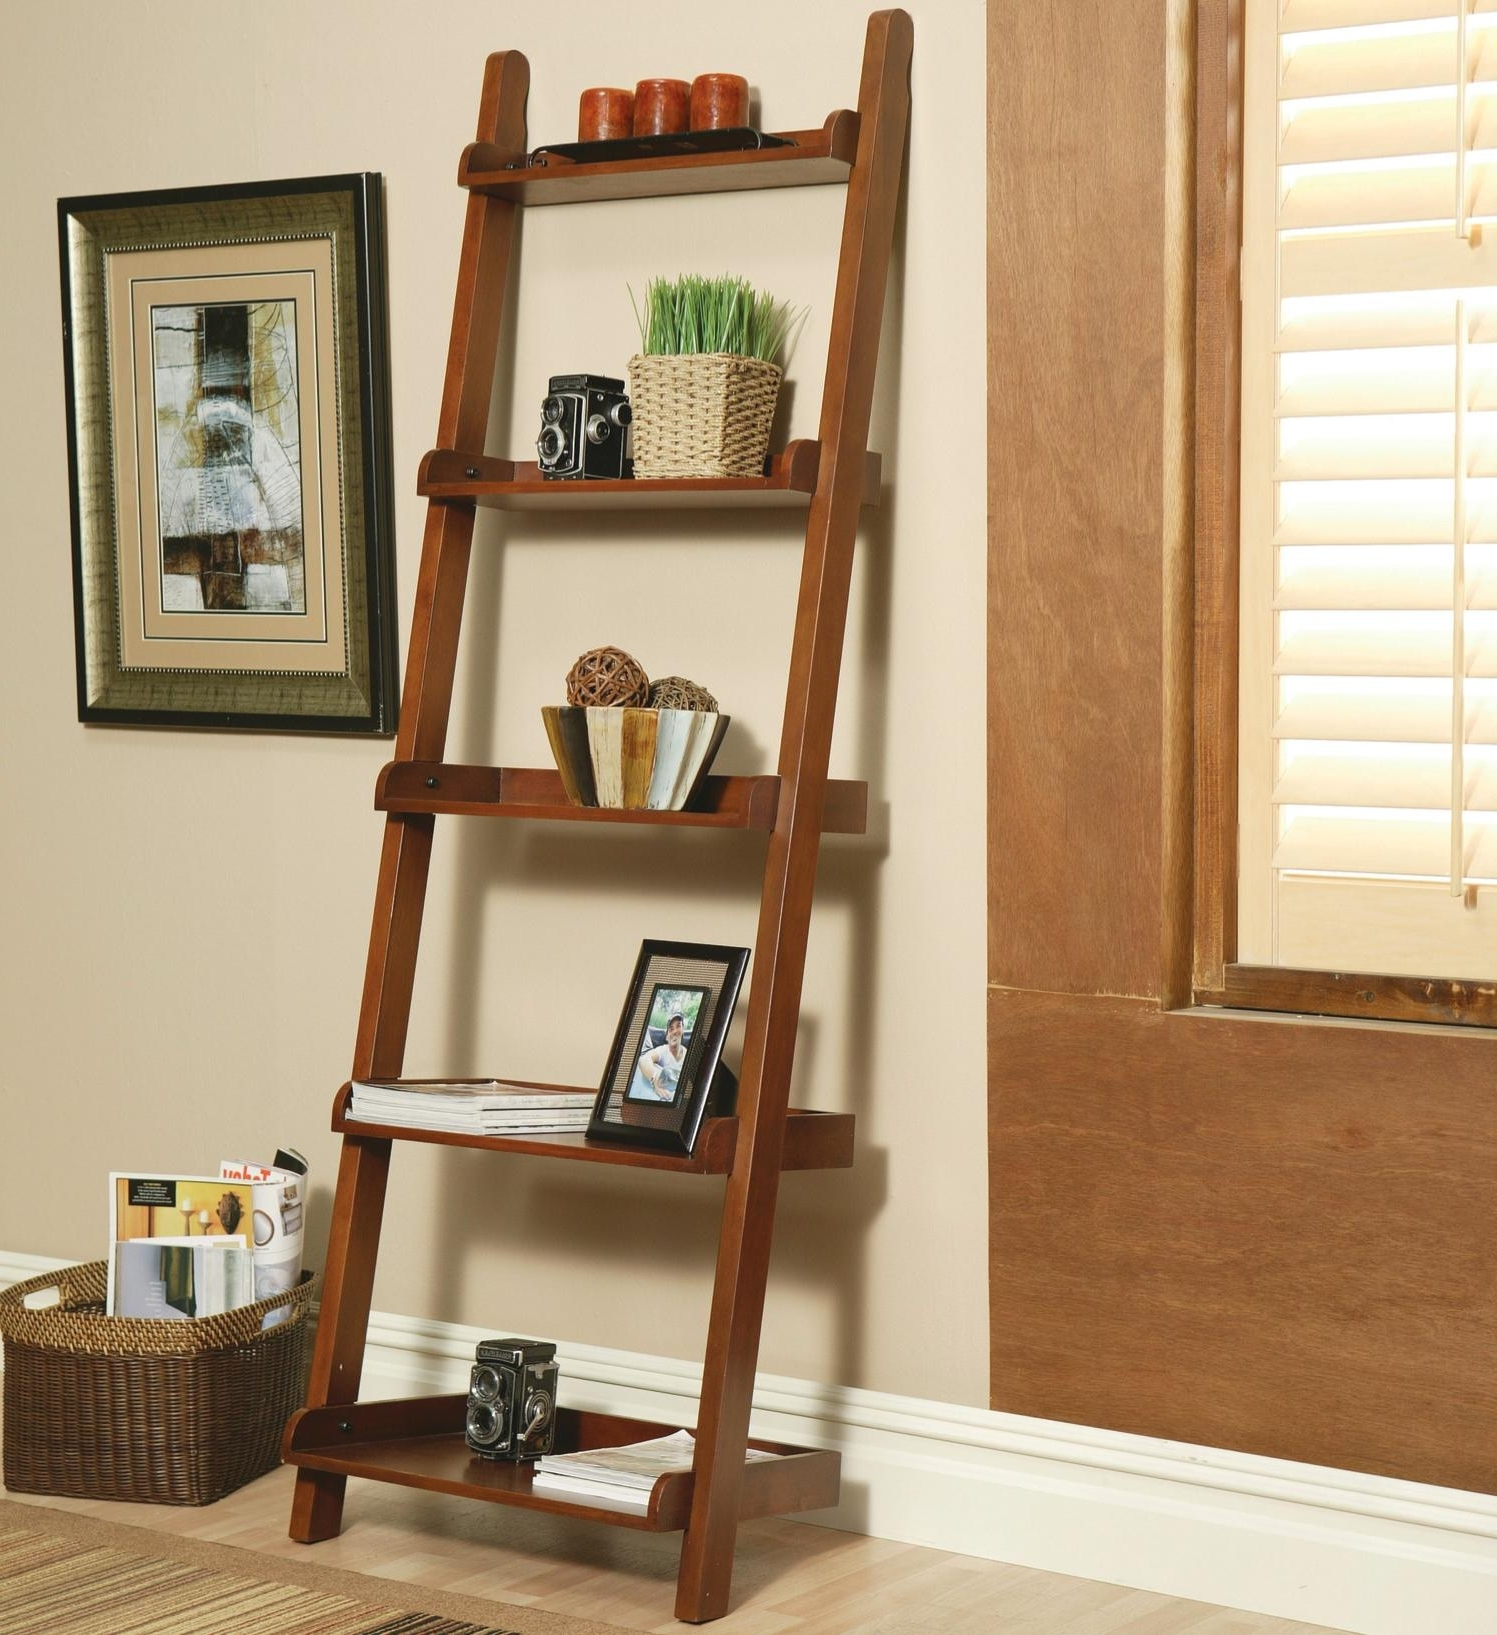 Most Recently Released Tilted Shelf Bookcase Shelves Bookcases Beautiful Photo Concept Throughout Leaning Shelf Bookcases (View 13 of 15)